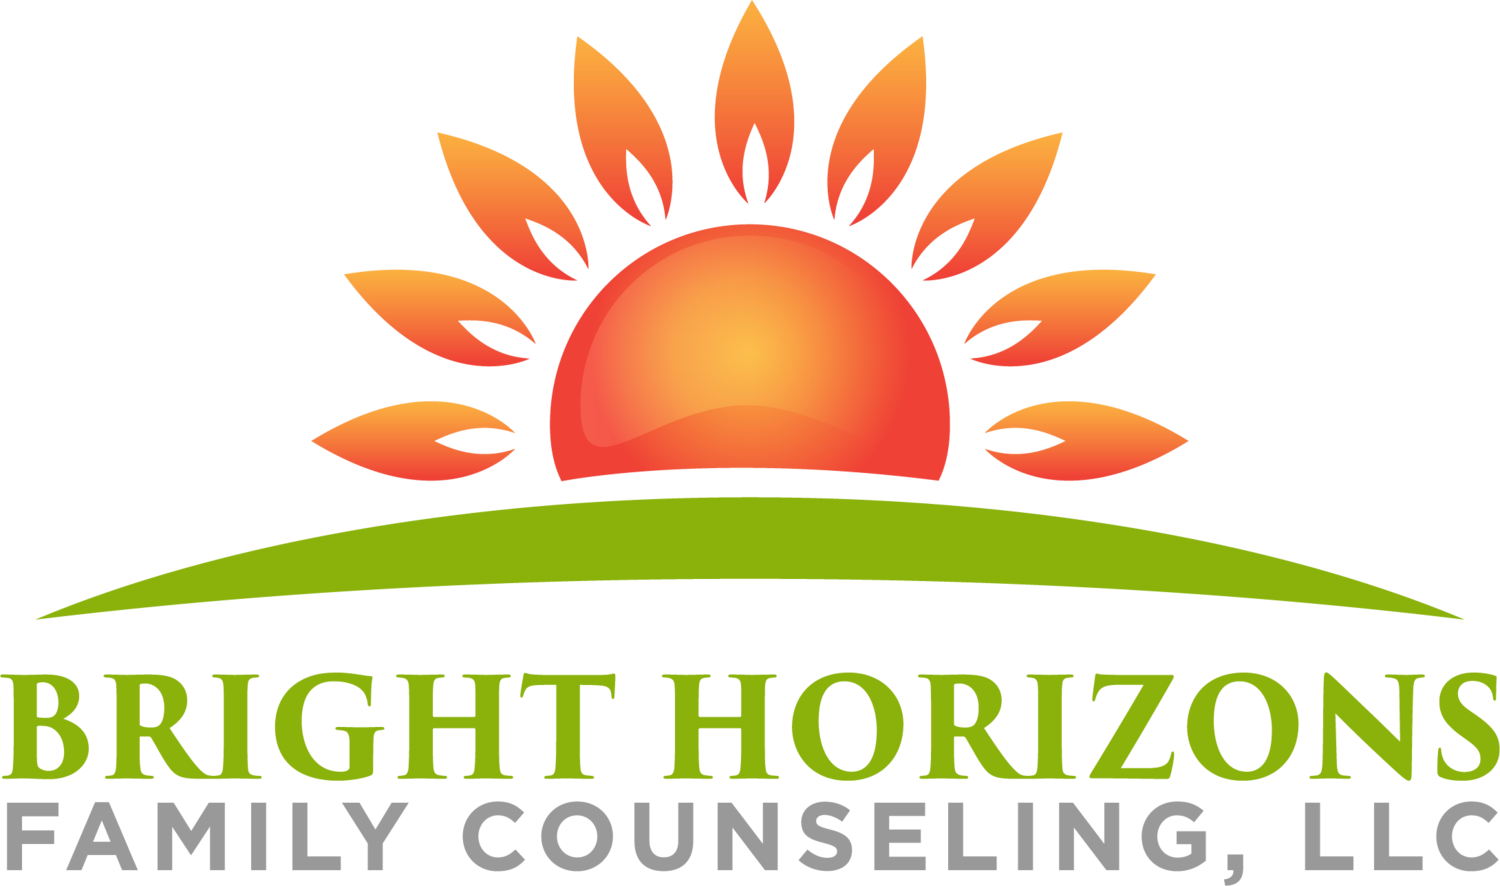 Bright Horizons Family Counseling, LLC